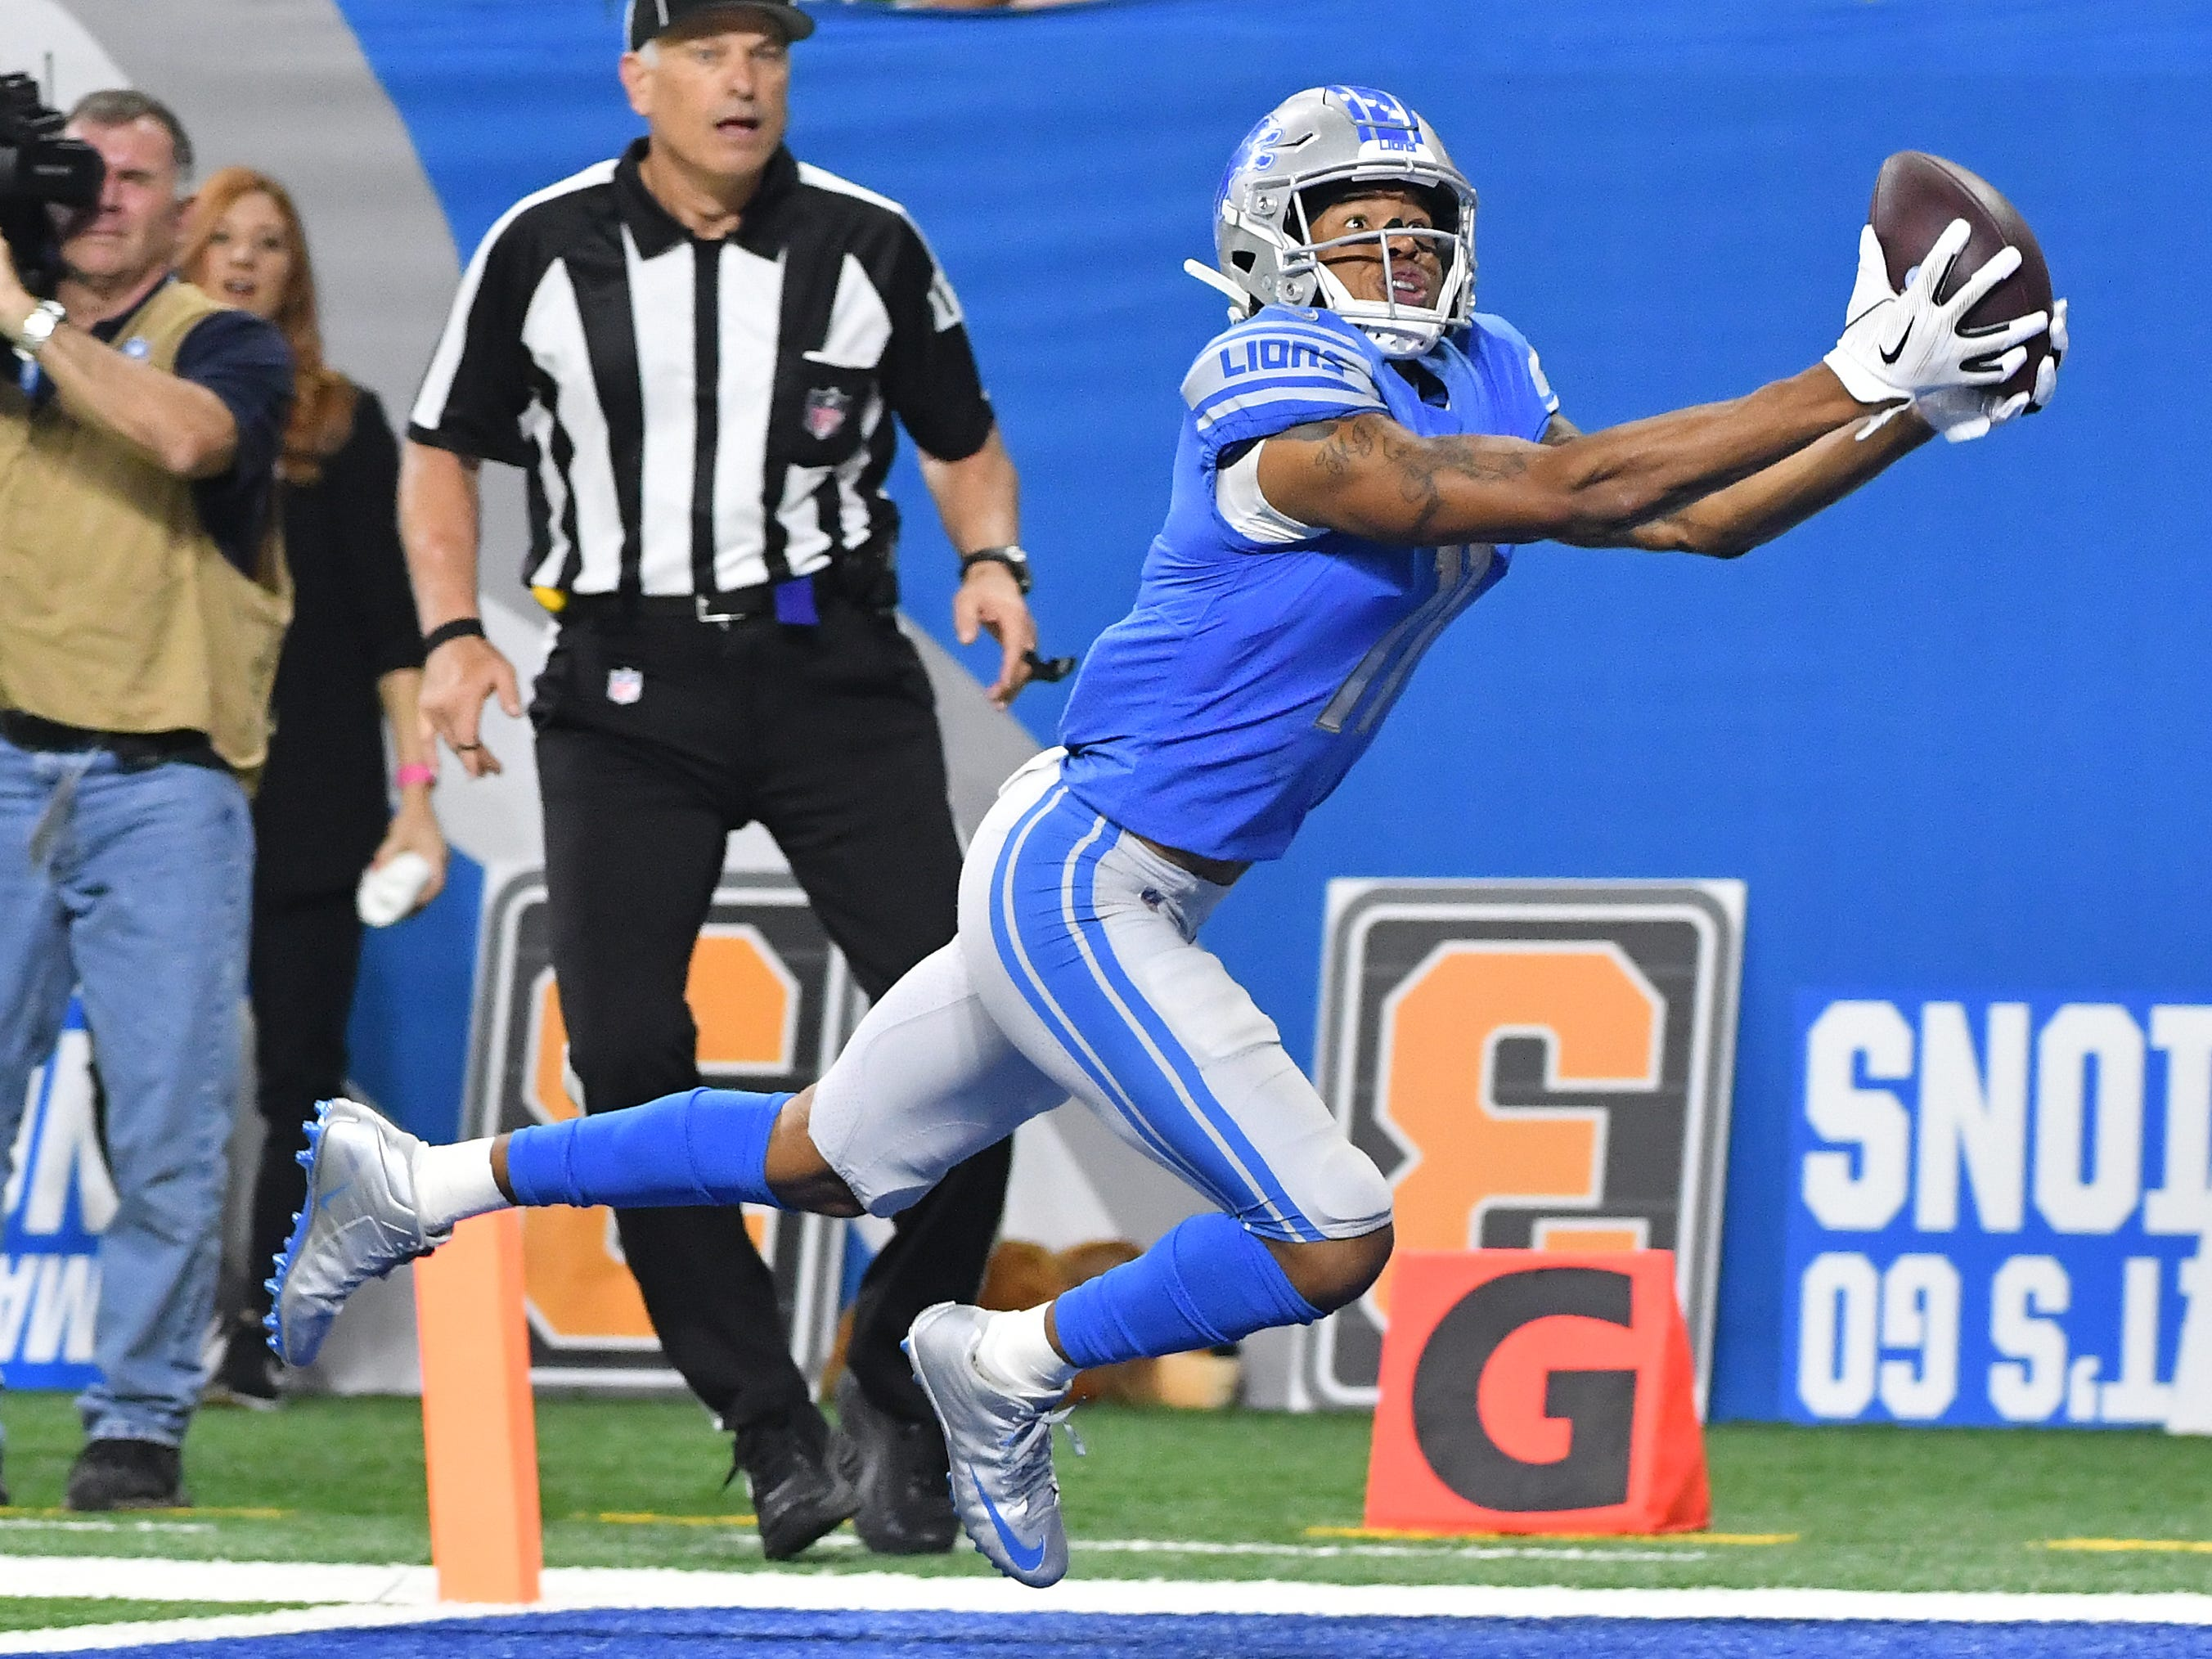 Lions wide receiver Marvin Jones Jr. pulls in a reception in the end zone but loses the ball as he hits the turf late in the third quarter.